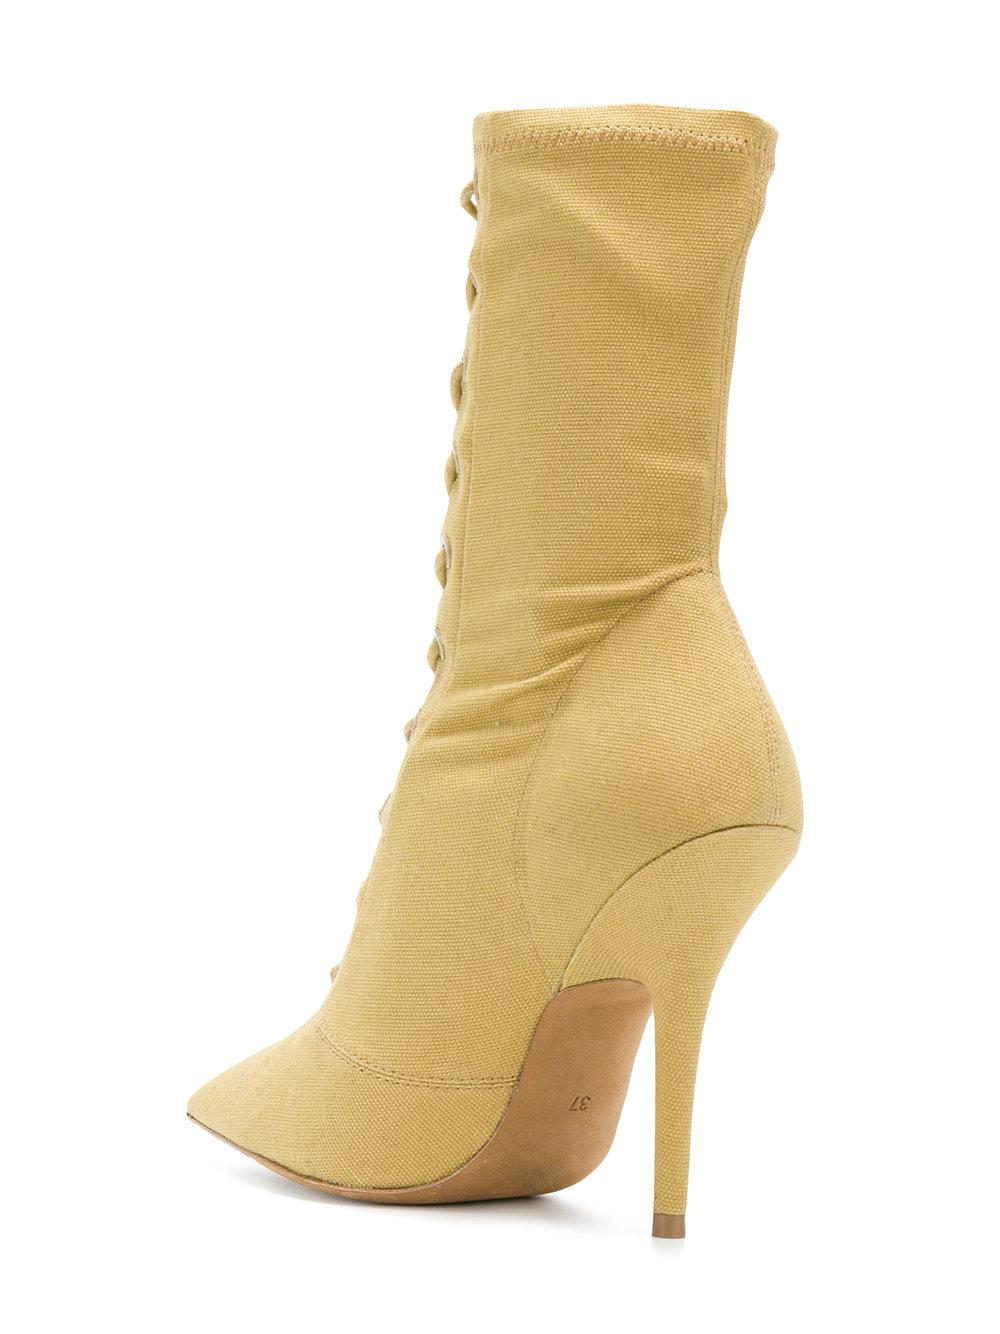 Season 6 ankle boots - Yellow & Orange Yeezy by Kanye West AY6tFEueVg